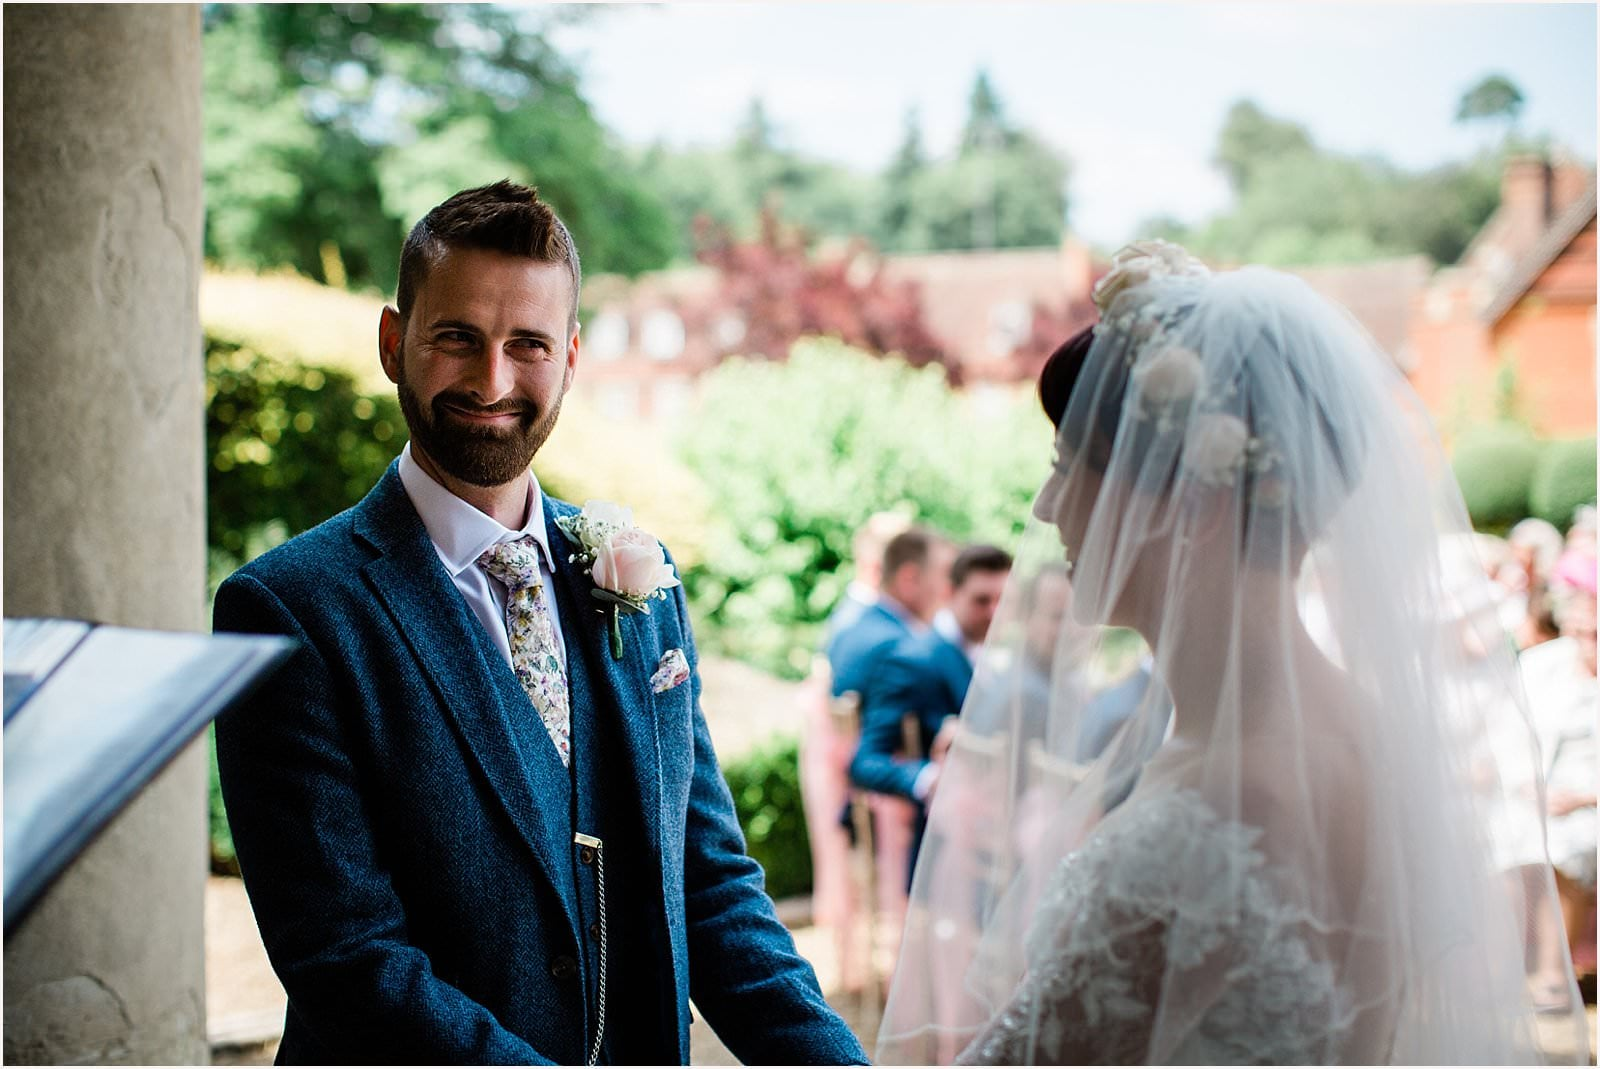 Wotton House Wedding - Justine + Rob's stunning wedding 25